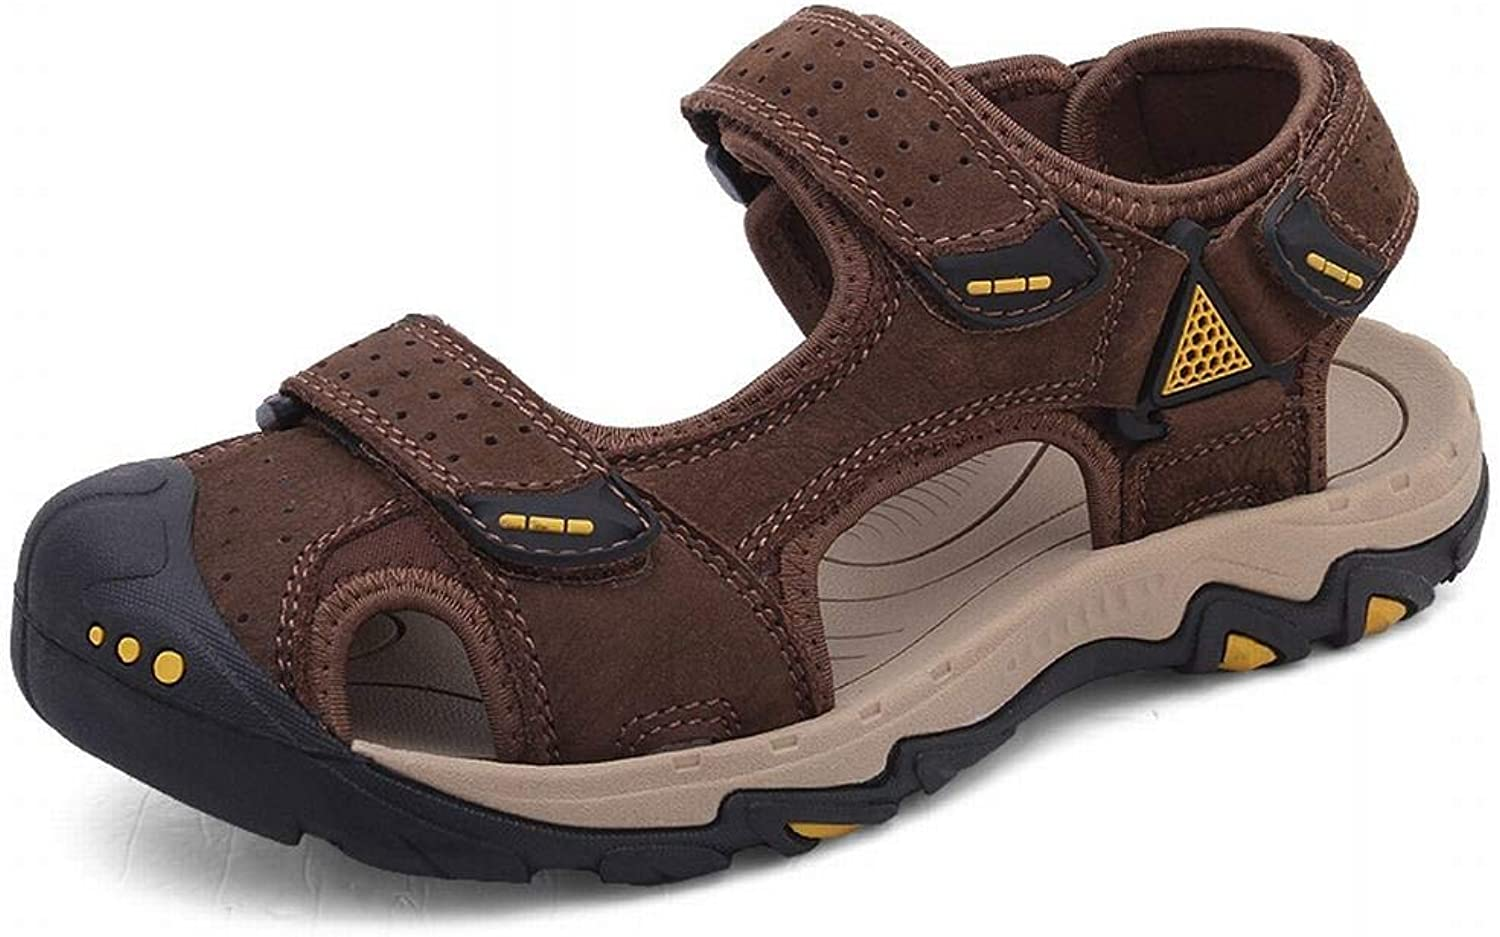 Men's Leather Wear-Resistant Beach shoes Breathable Casual Outdoor River shoes Summer Leather Sandals (color   Brown, Size   46)